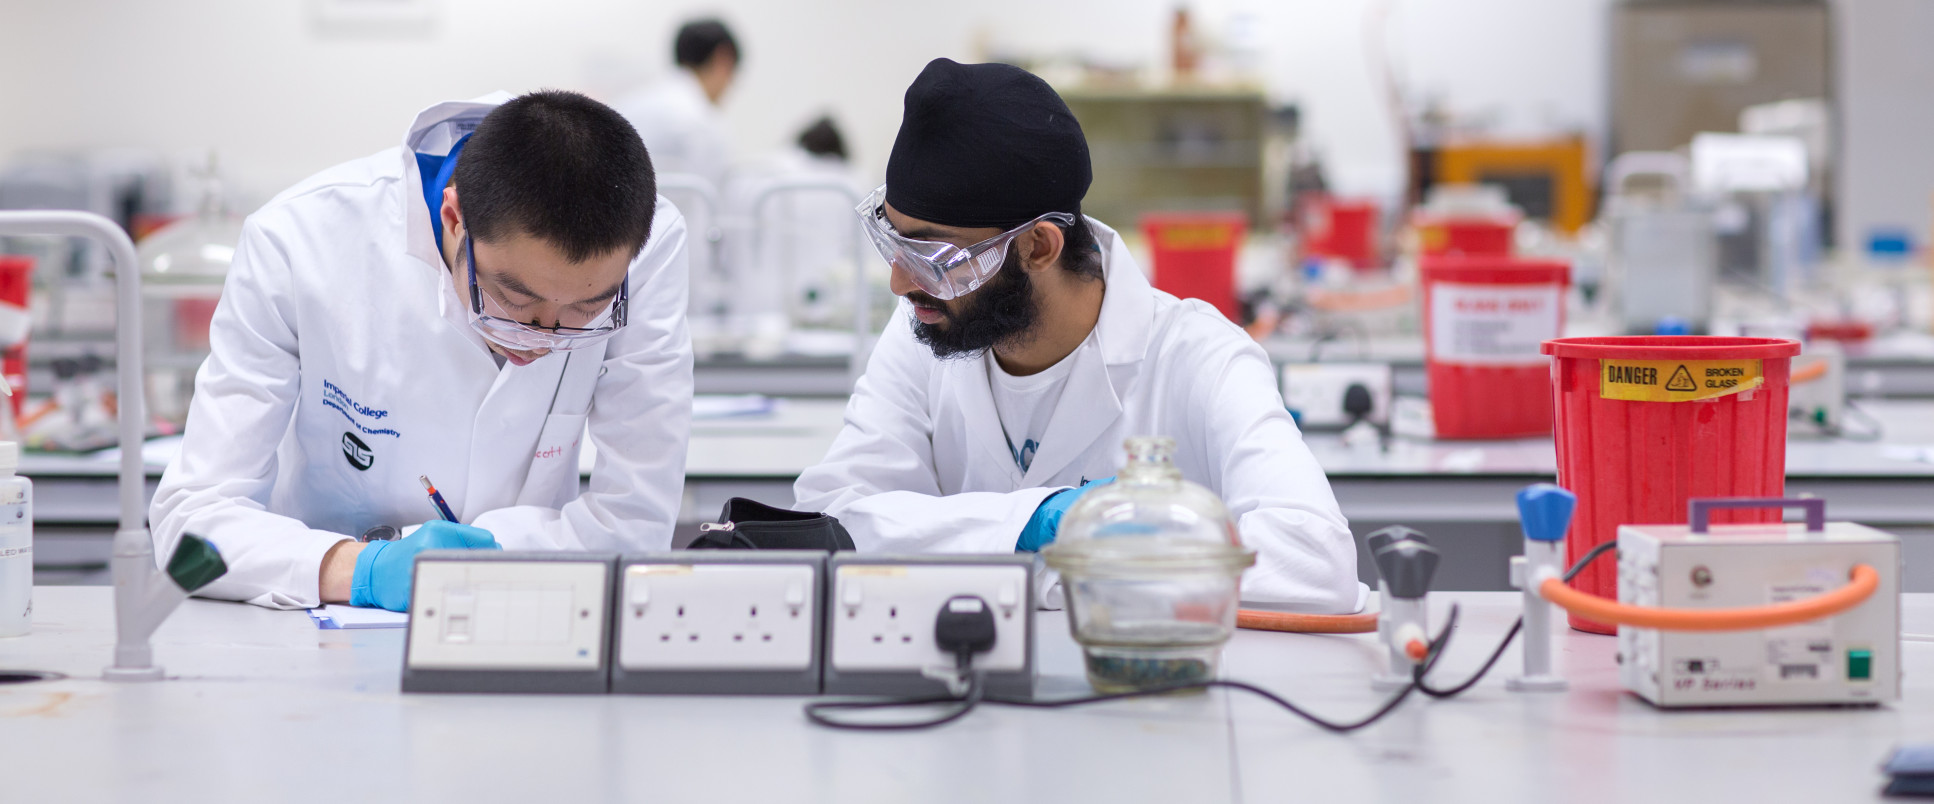 Students working in labs